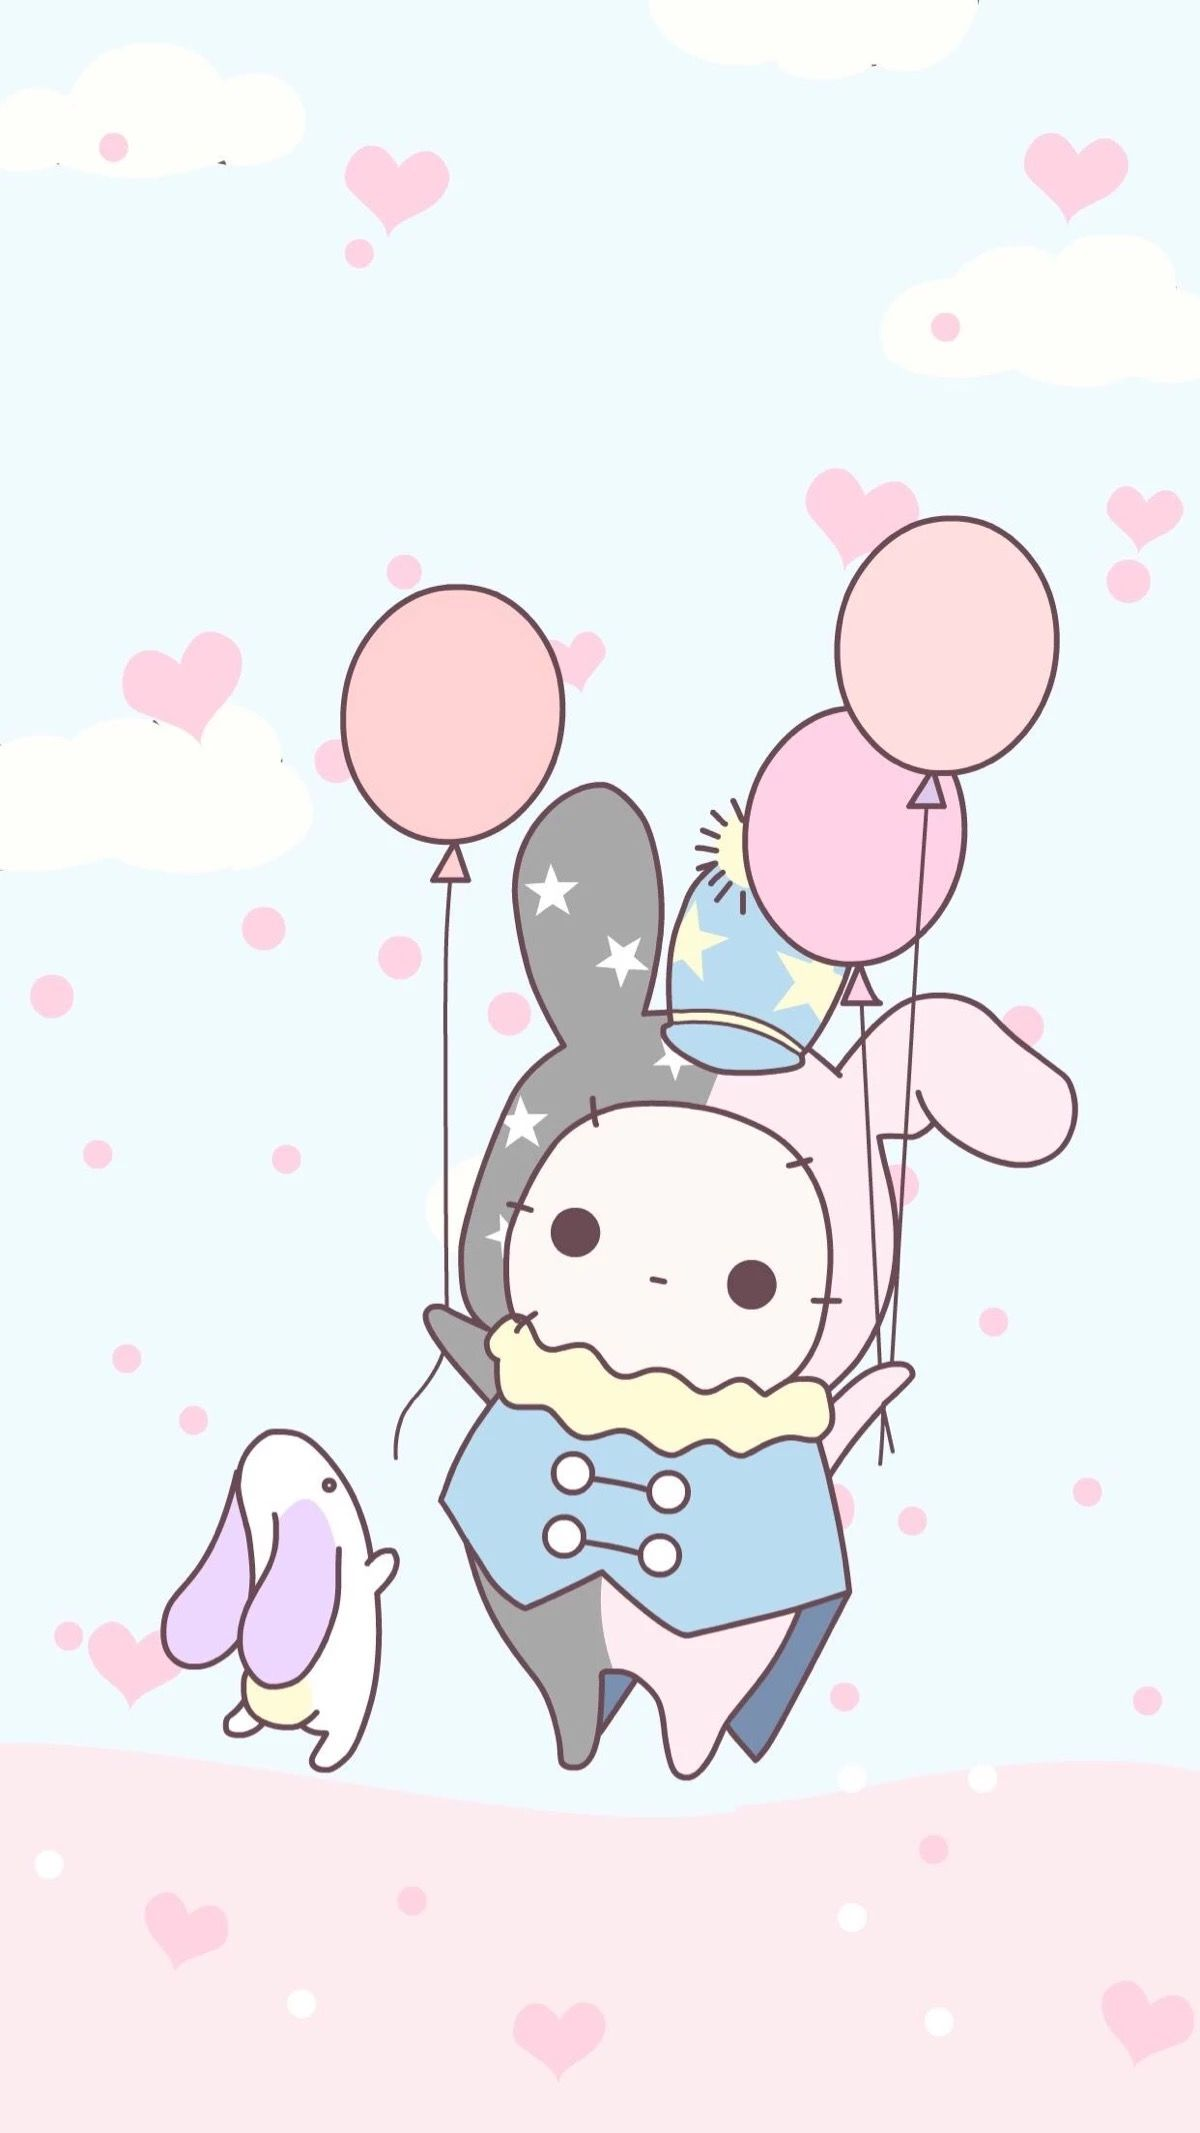 Cool Wallpaper Hello Kitty Pastel - f0825dd21acf47a13b38f5068c1214eb  Pictures_475858.jpg